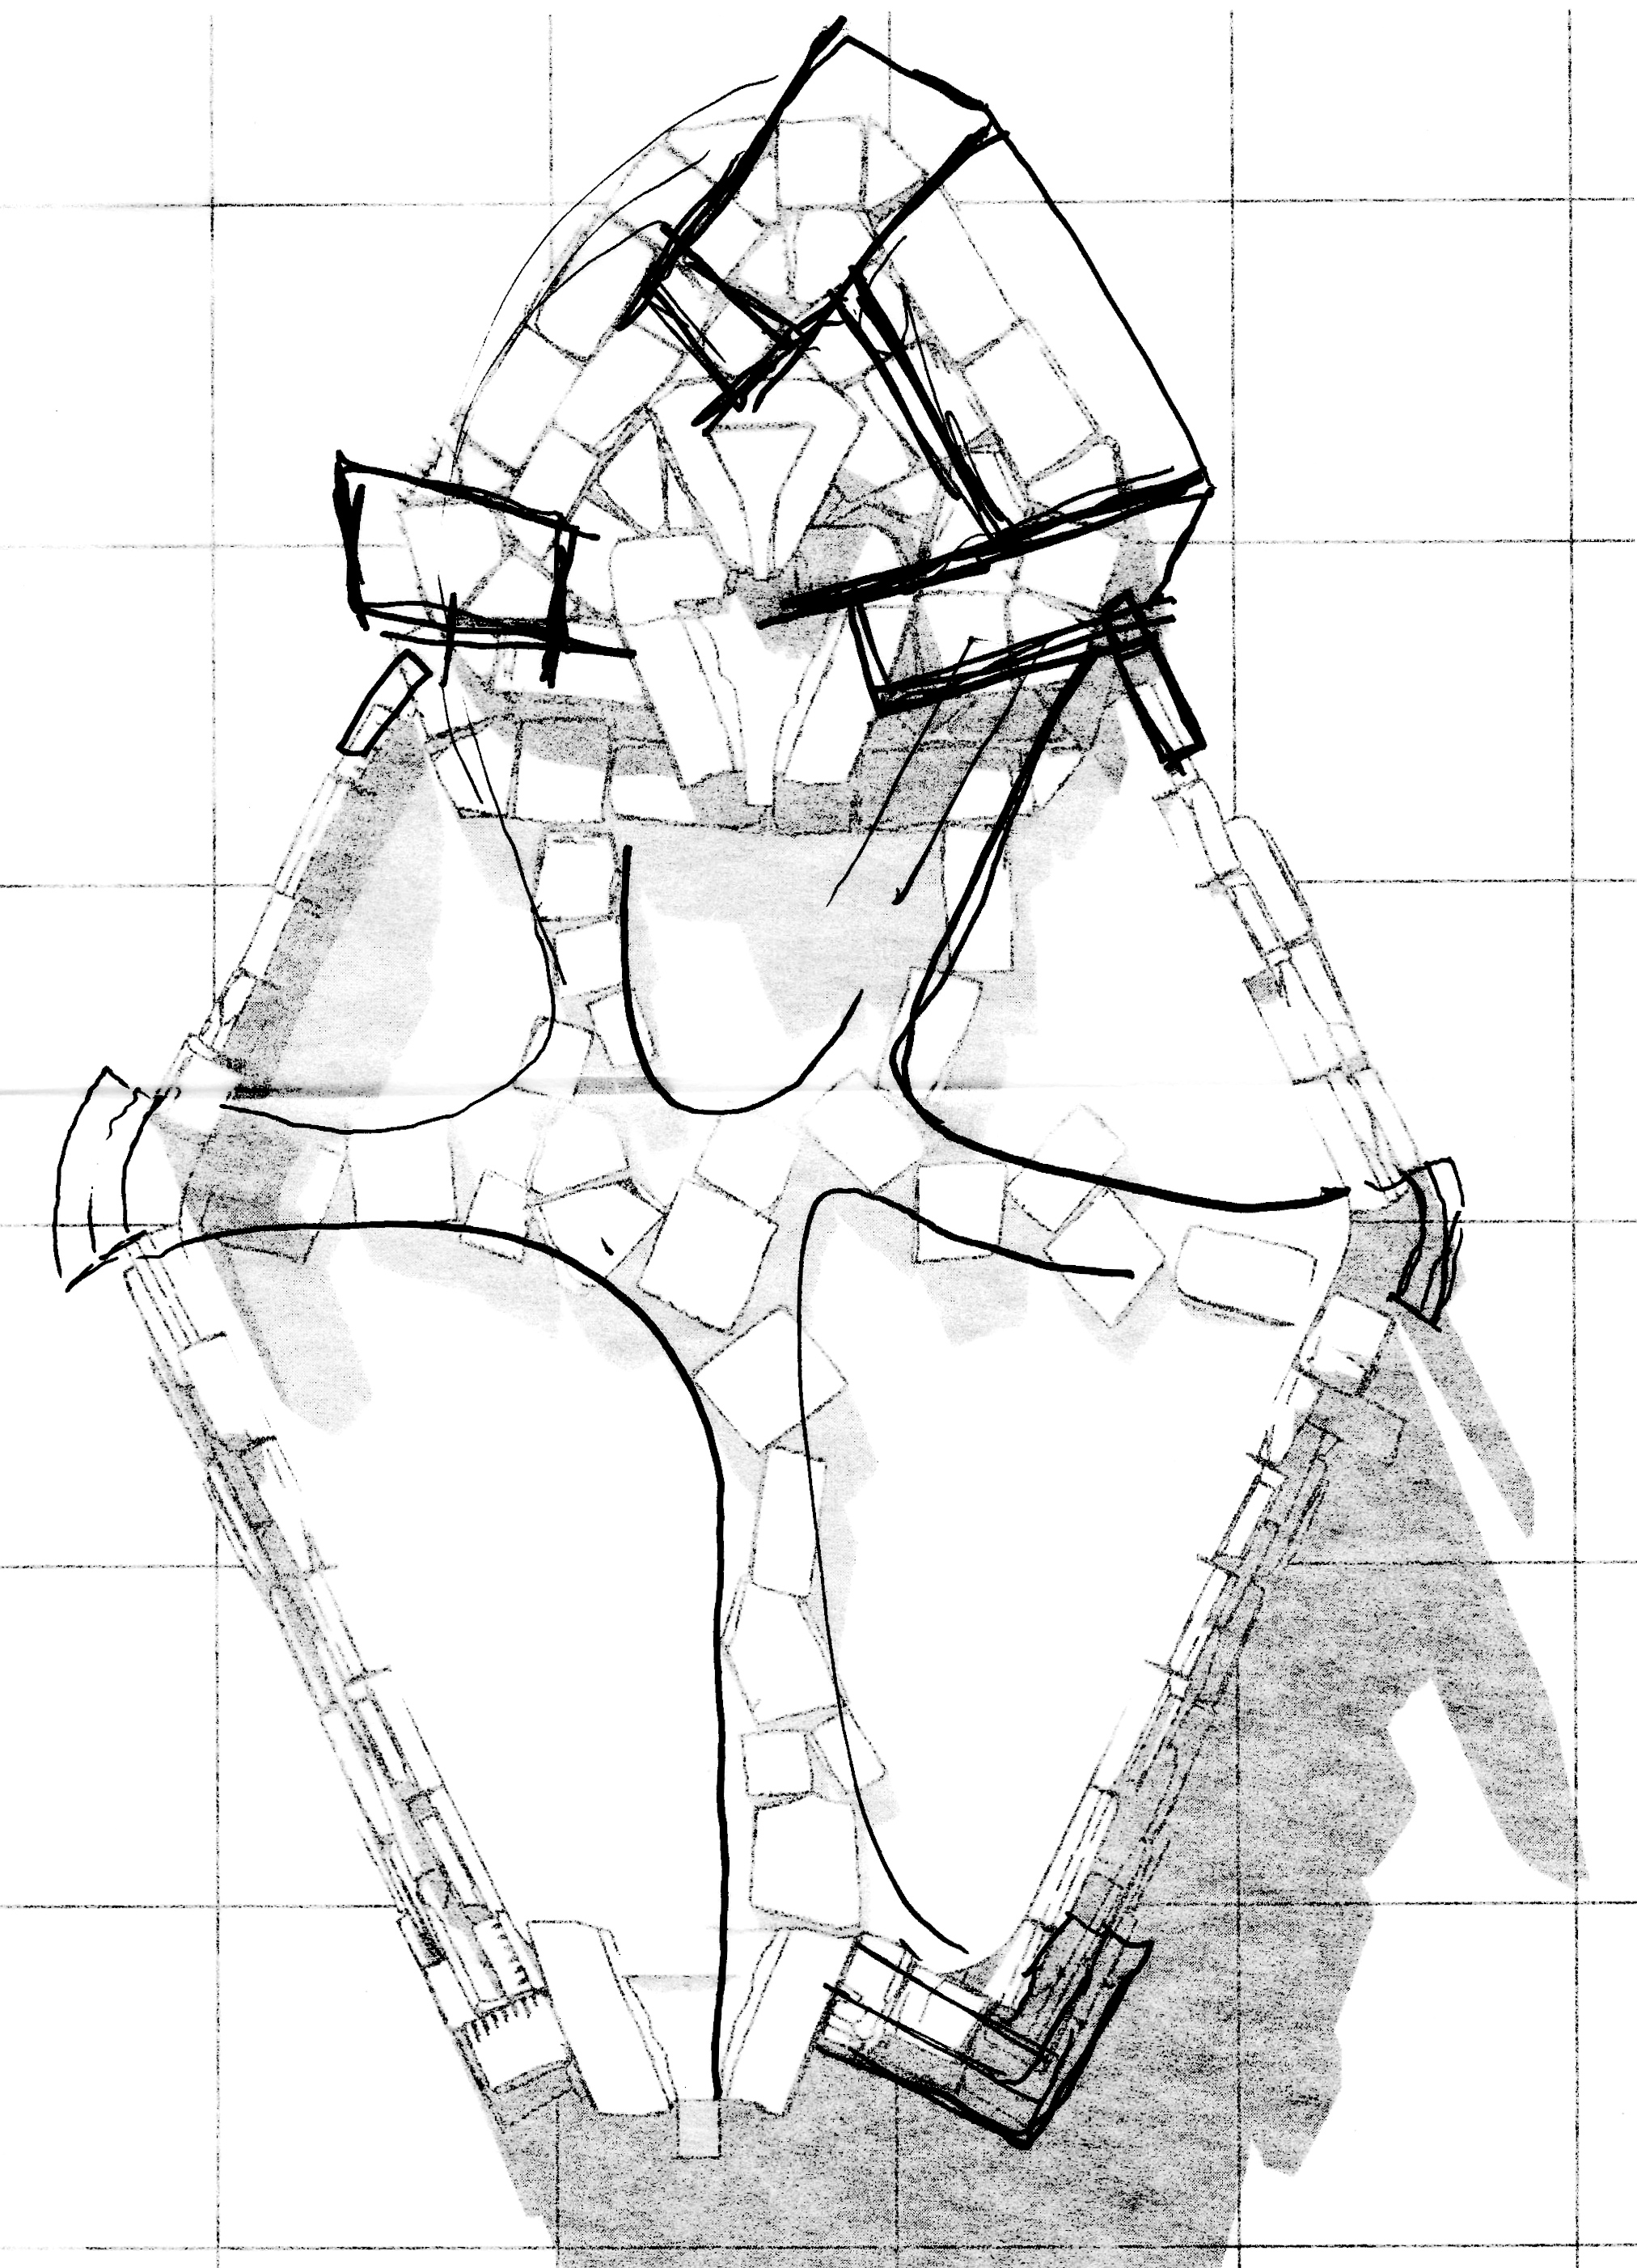 Future Monument (2009) rhombus pool sketch plan